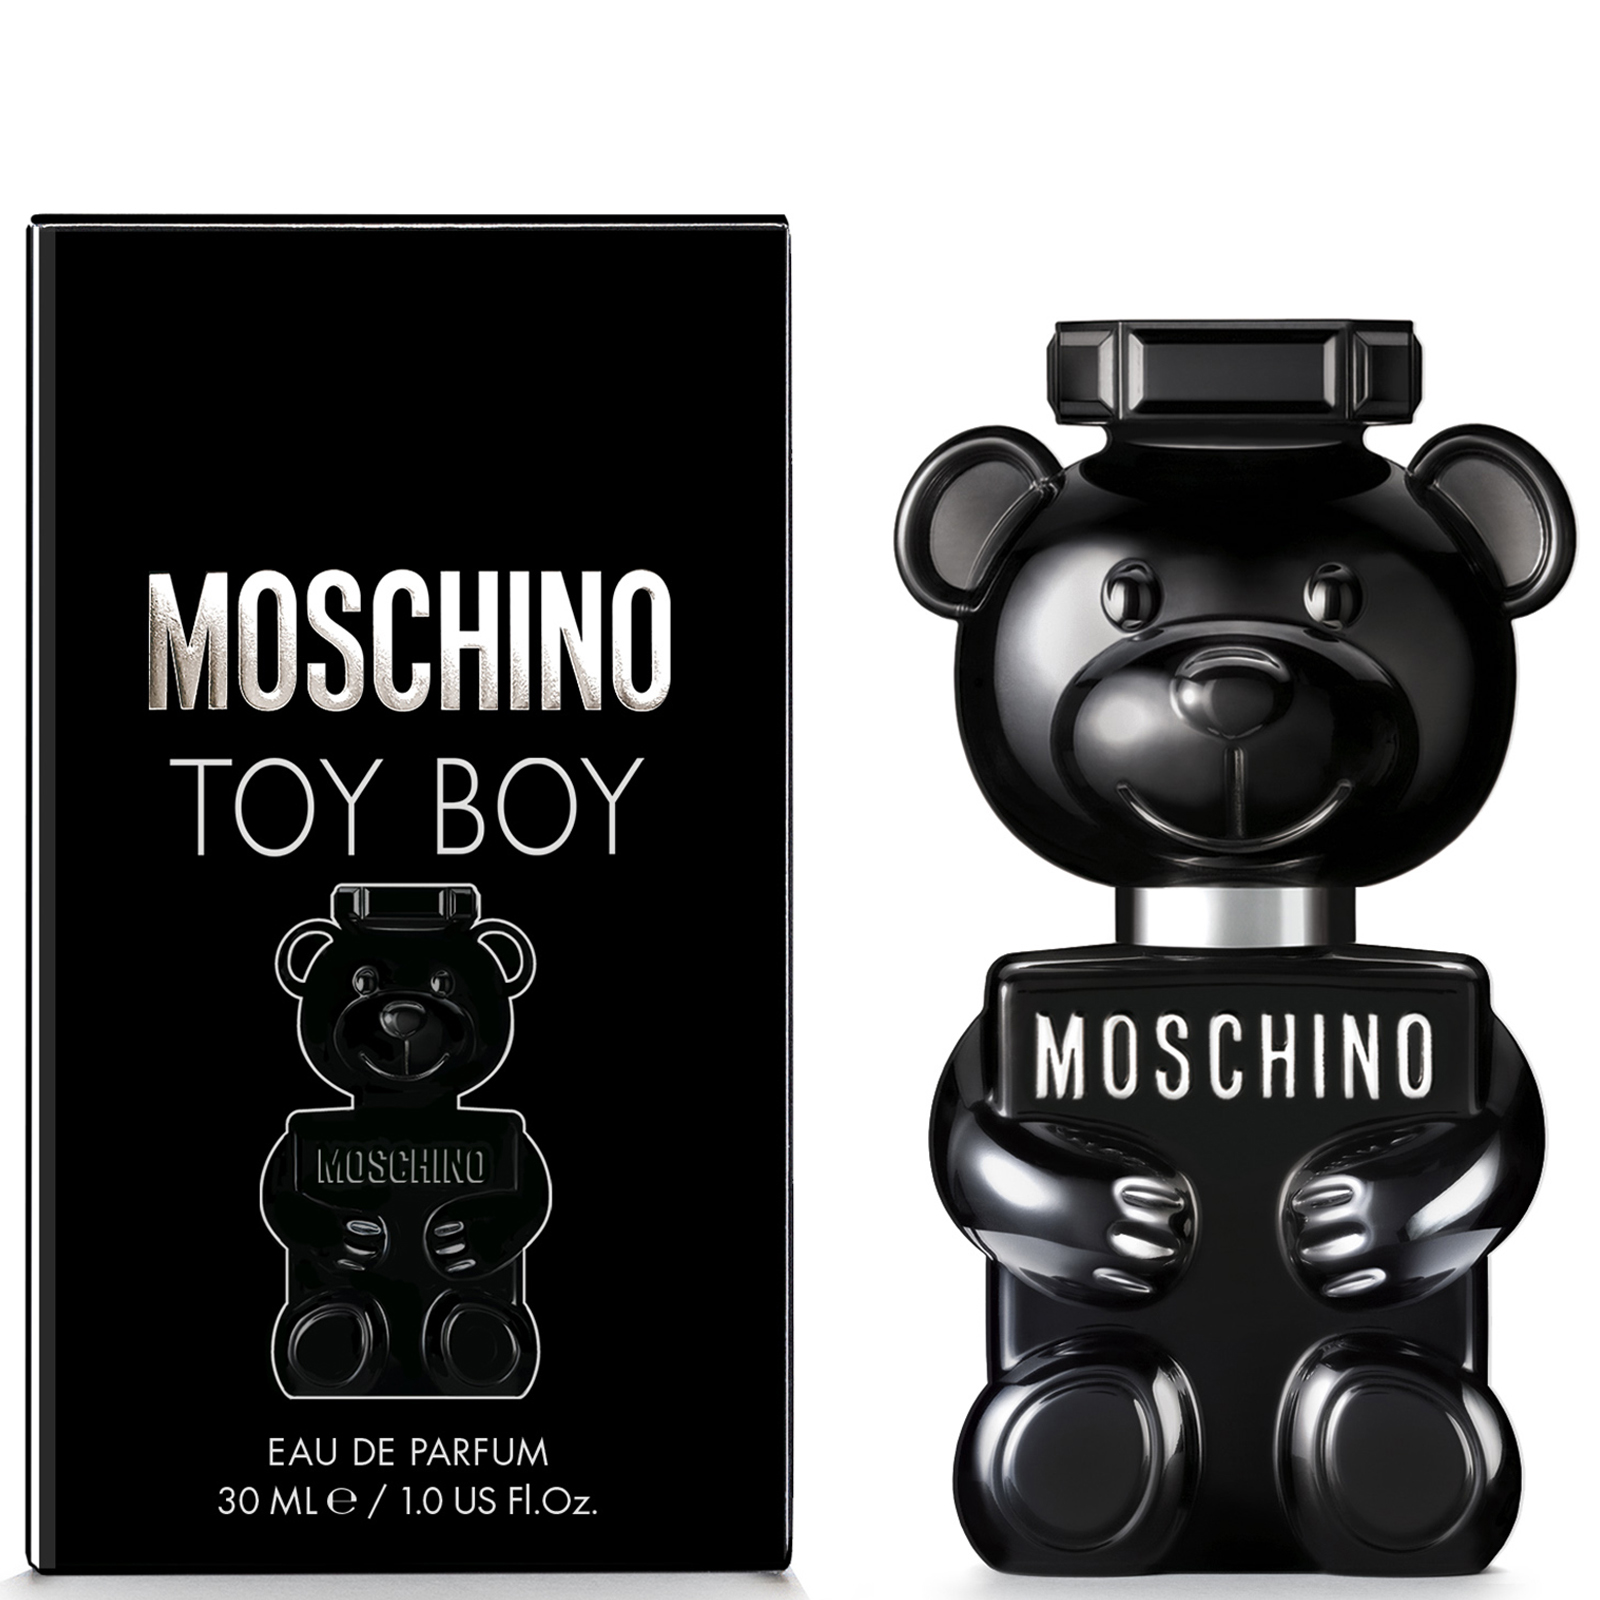 Moschino Toy Boy Eau de Parfum Spray 30ml